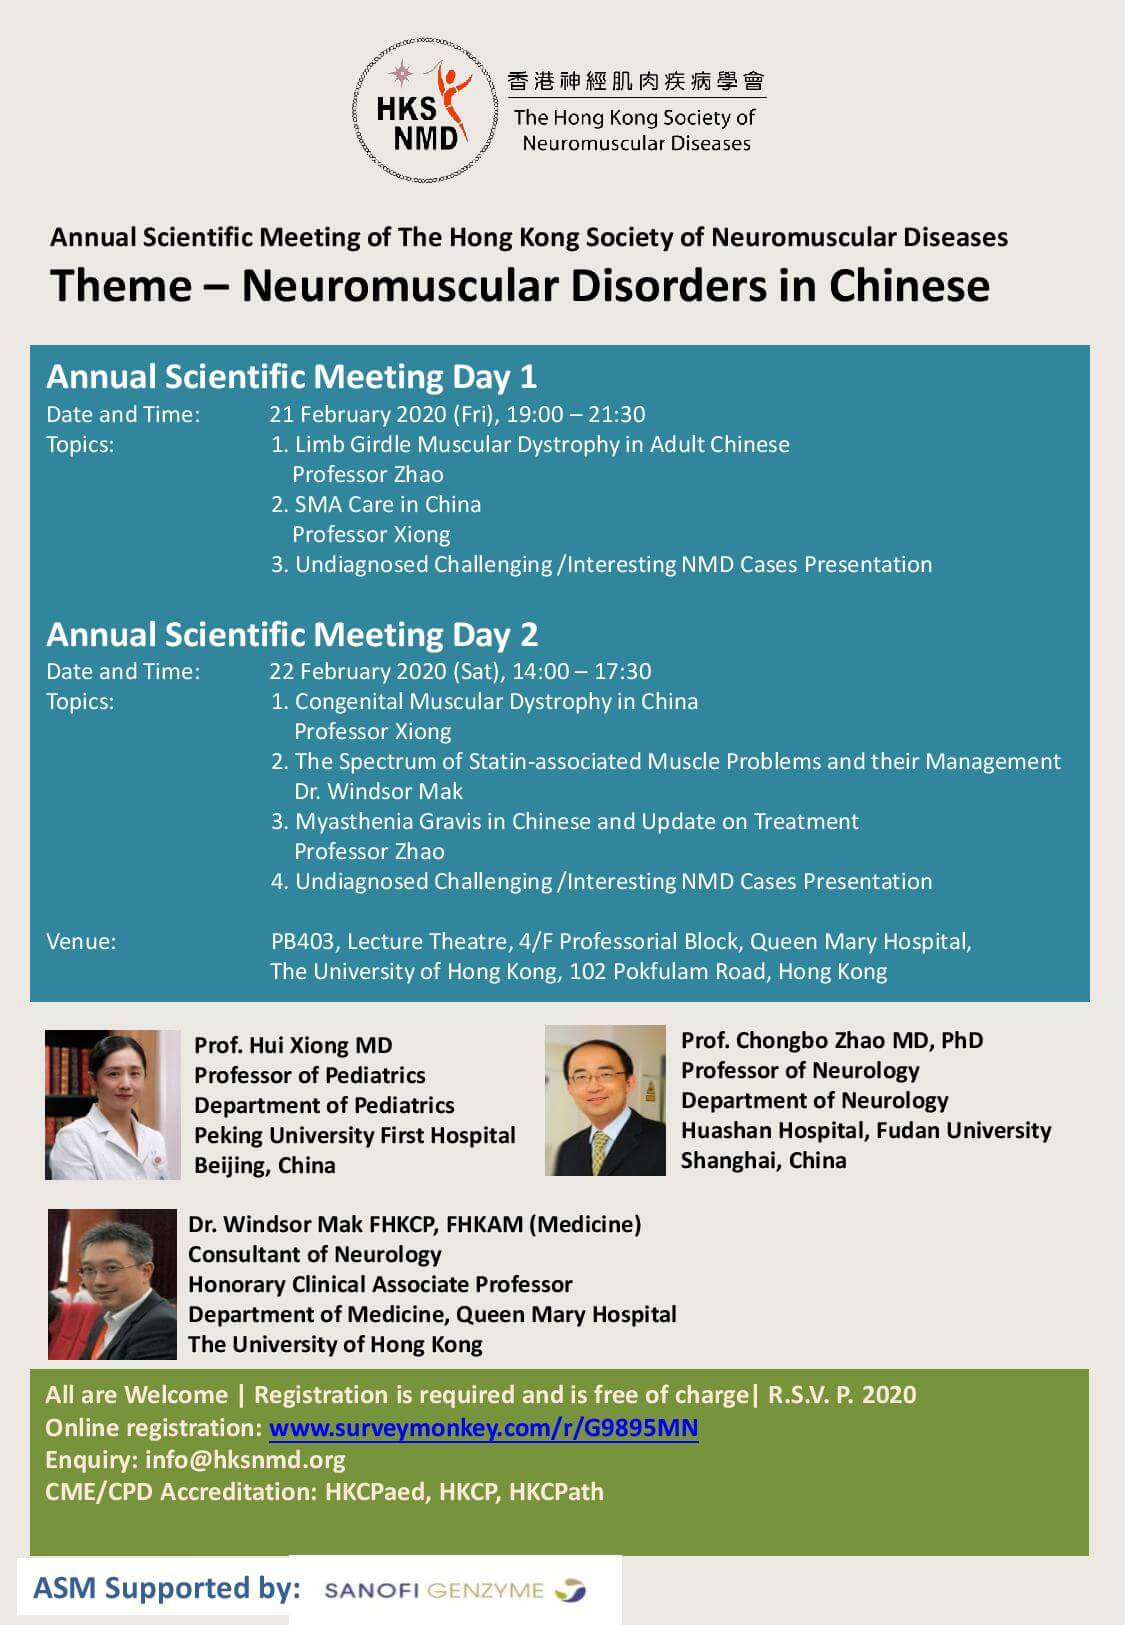 Event Flyer of Annual Scientific Meeting of The Hong Kong Society of Neuromuscular Diseases 2019